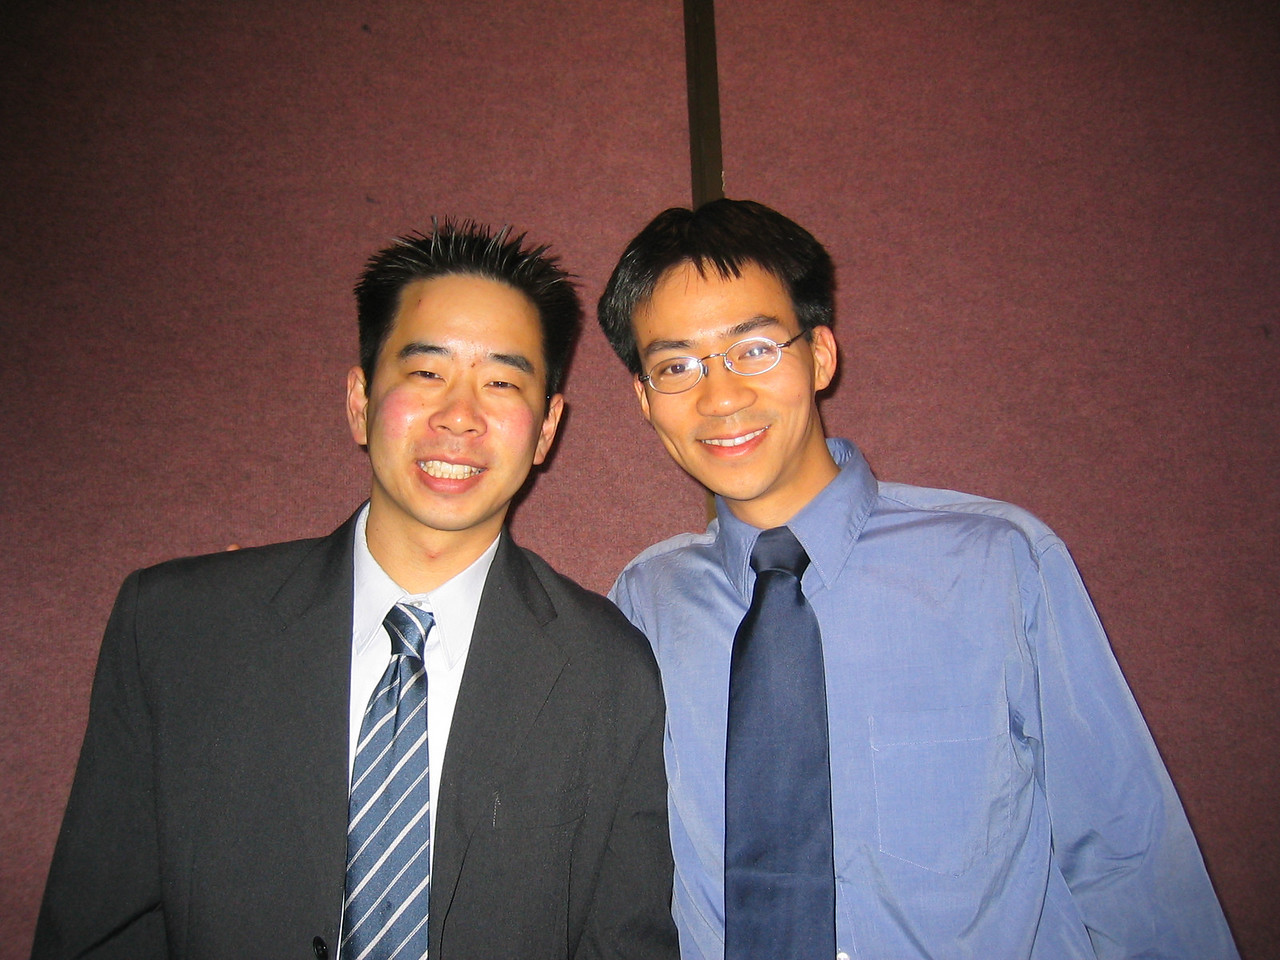 Reception - Henry 'Cheeks' Peng & Ben Yu